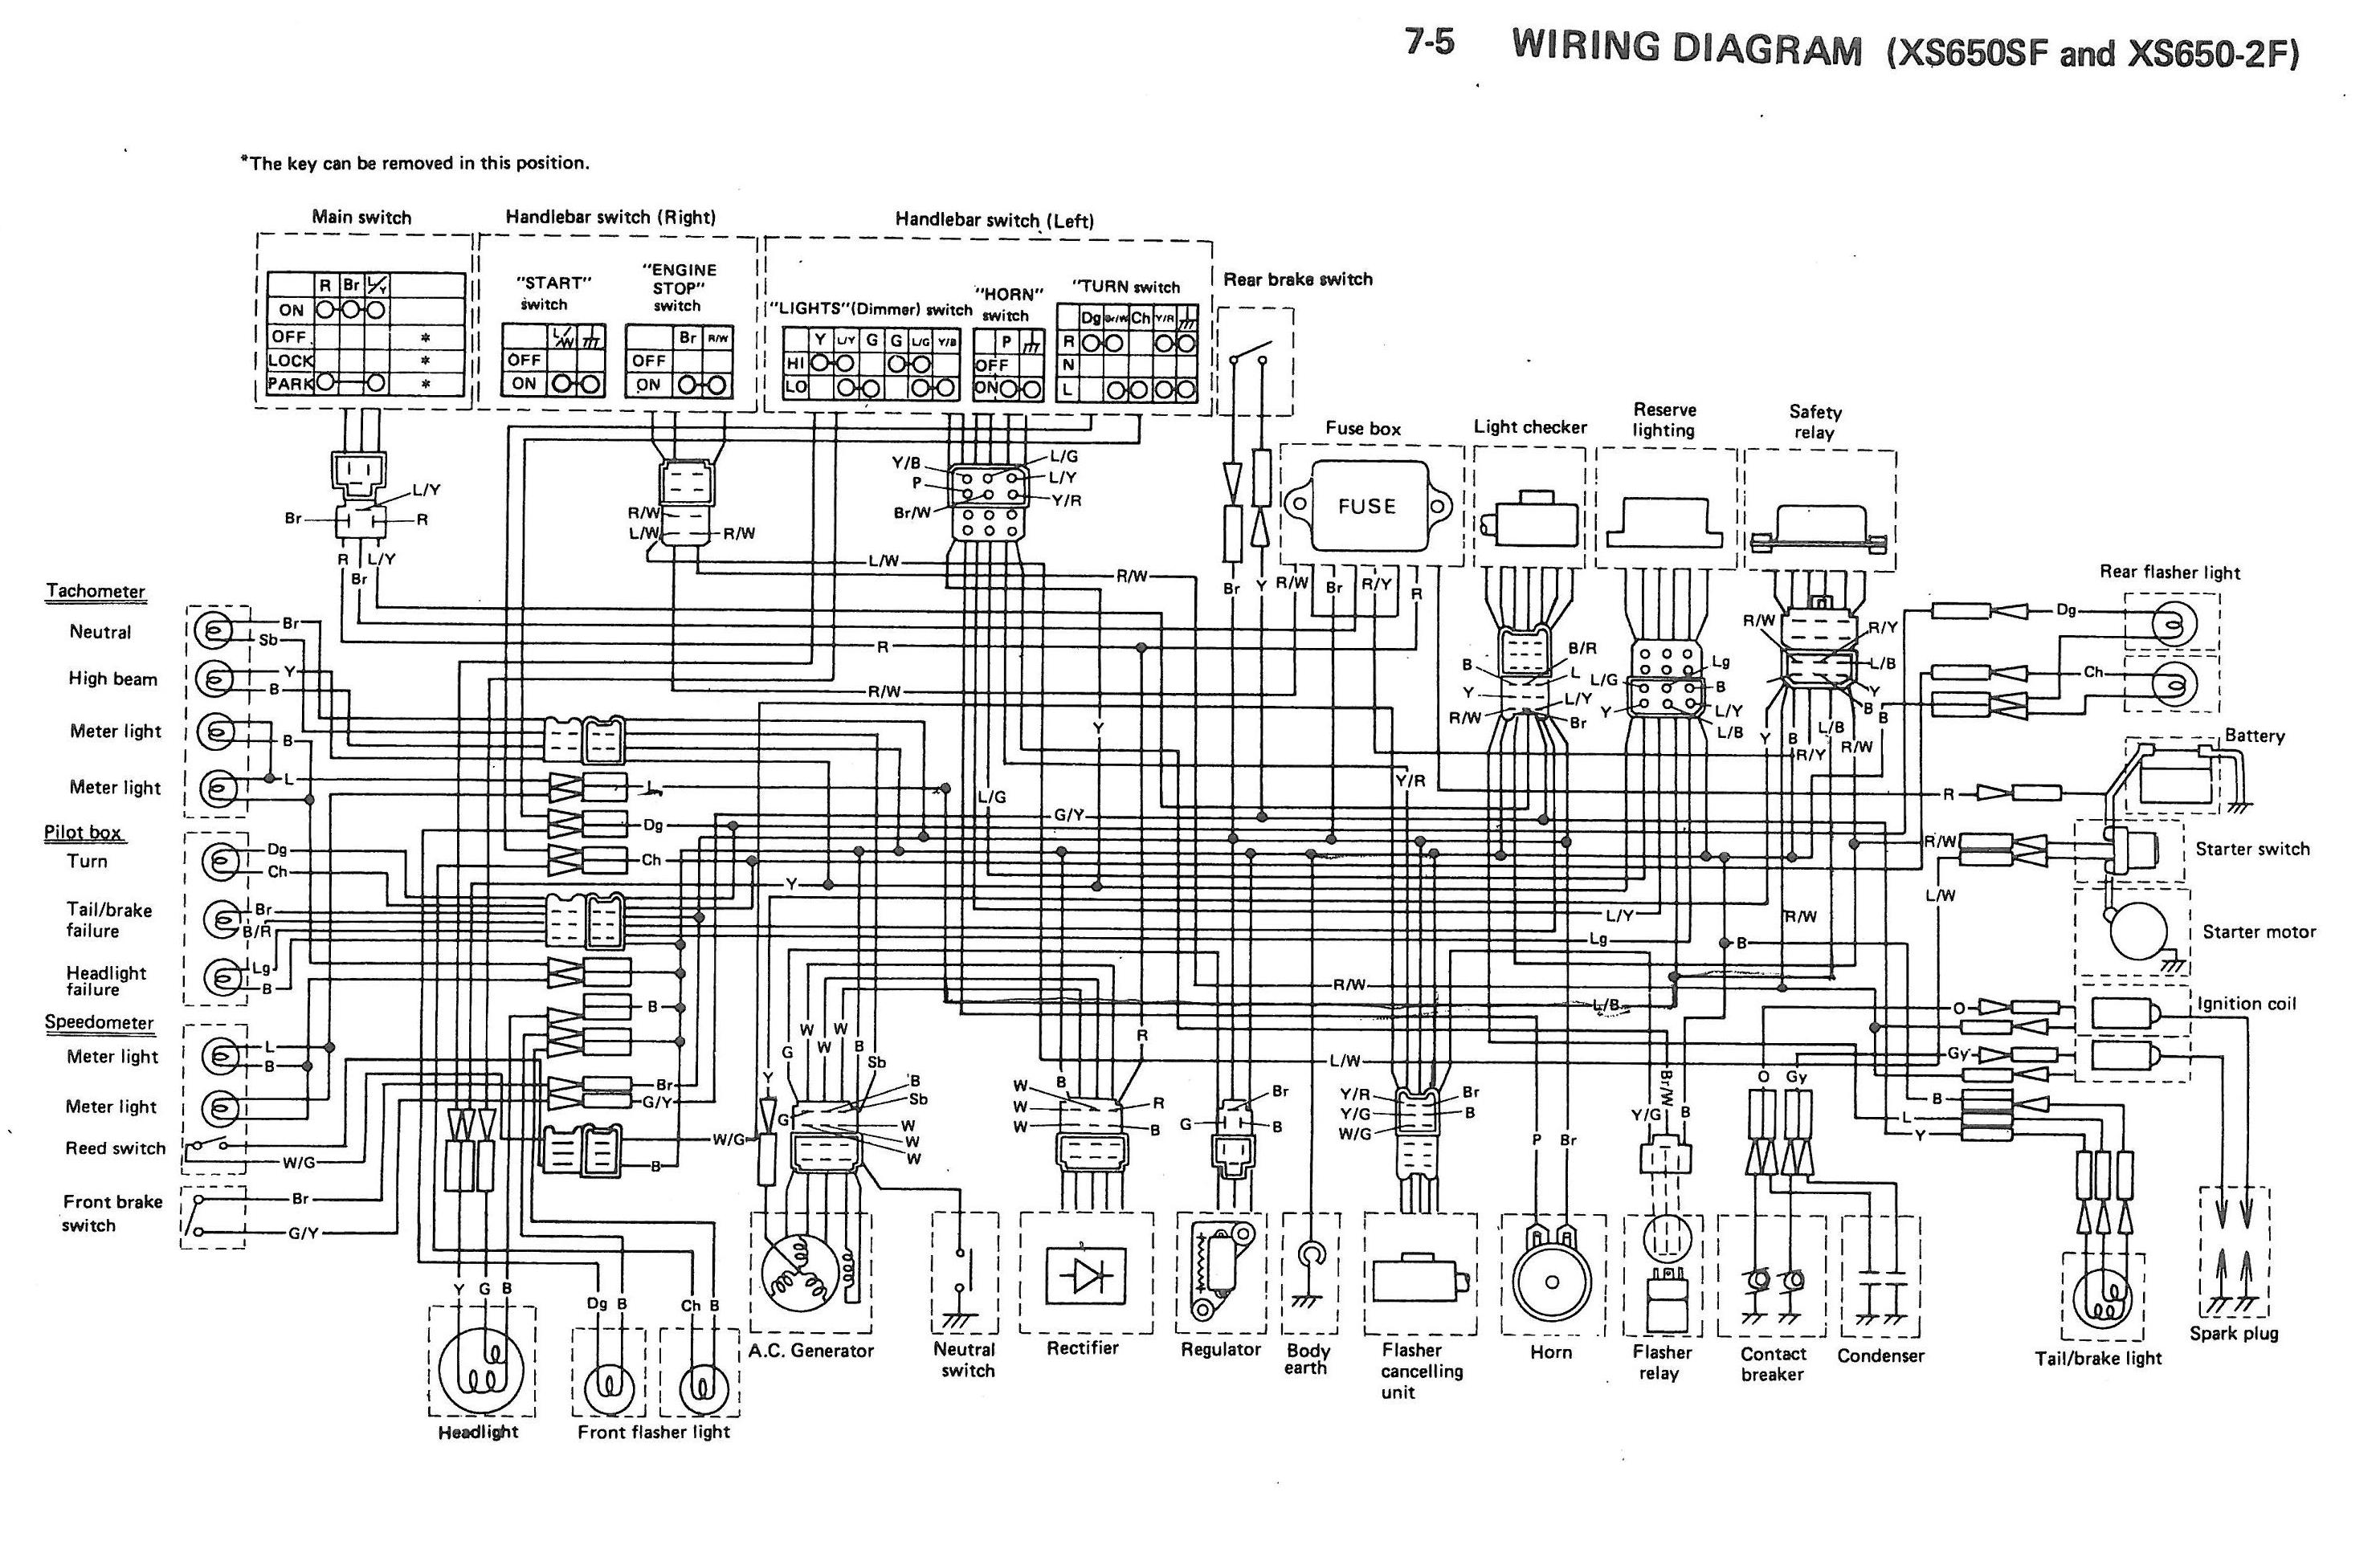 xs650 wiring diagram for 1979 ignition wiring diagram for 1979 ford f100